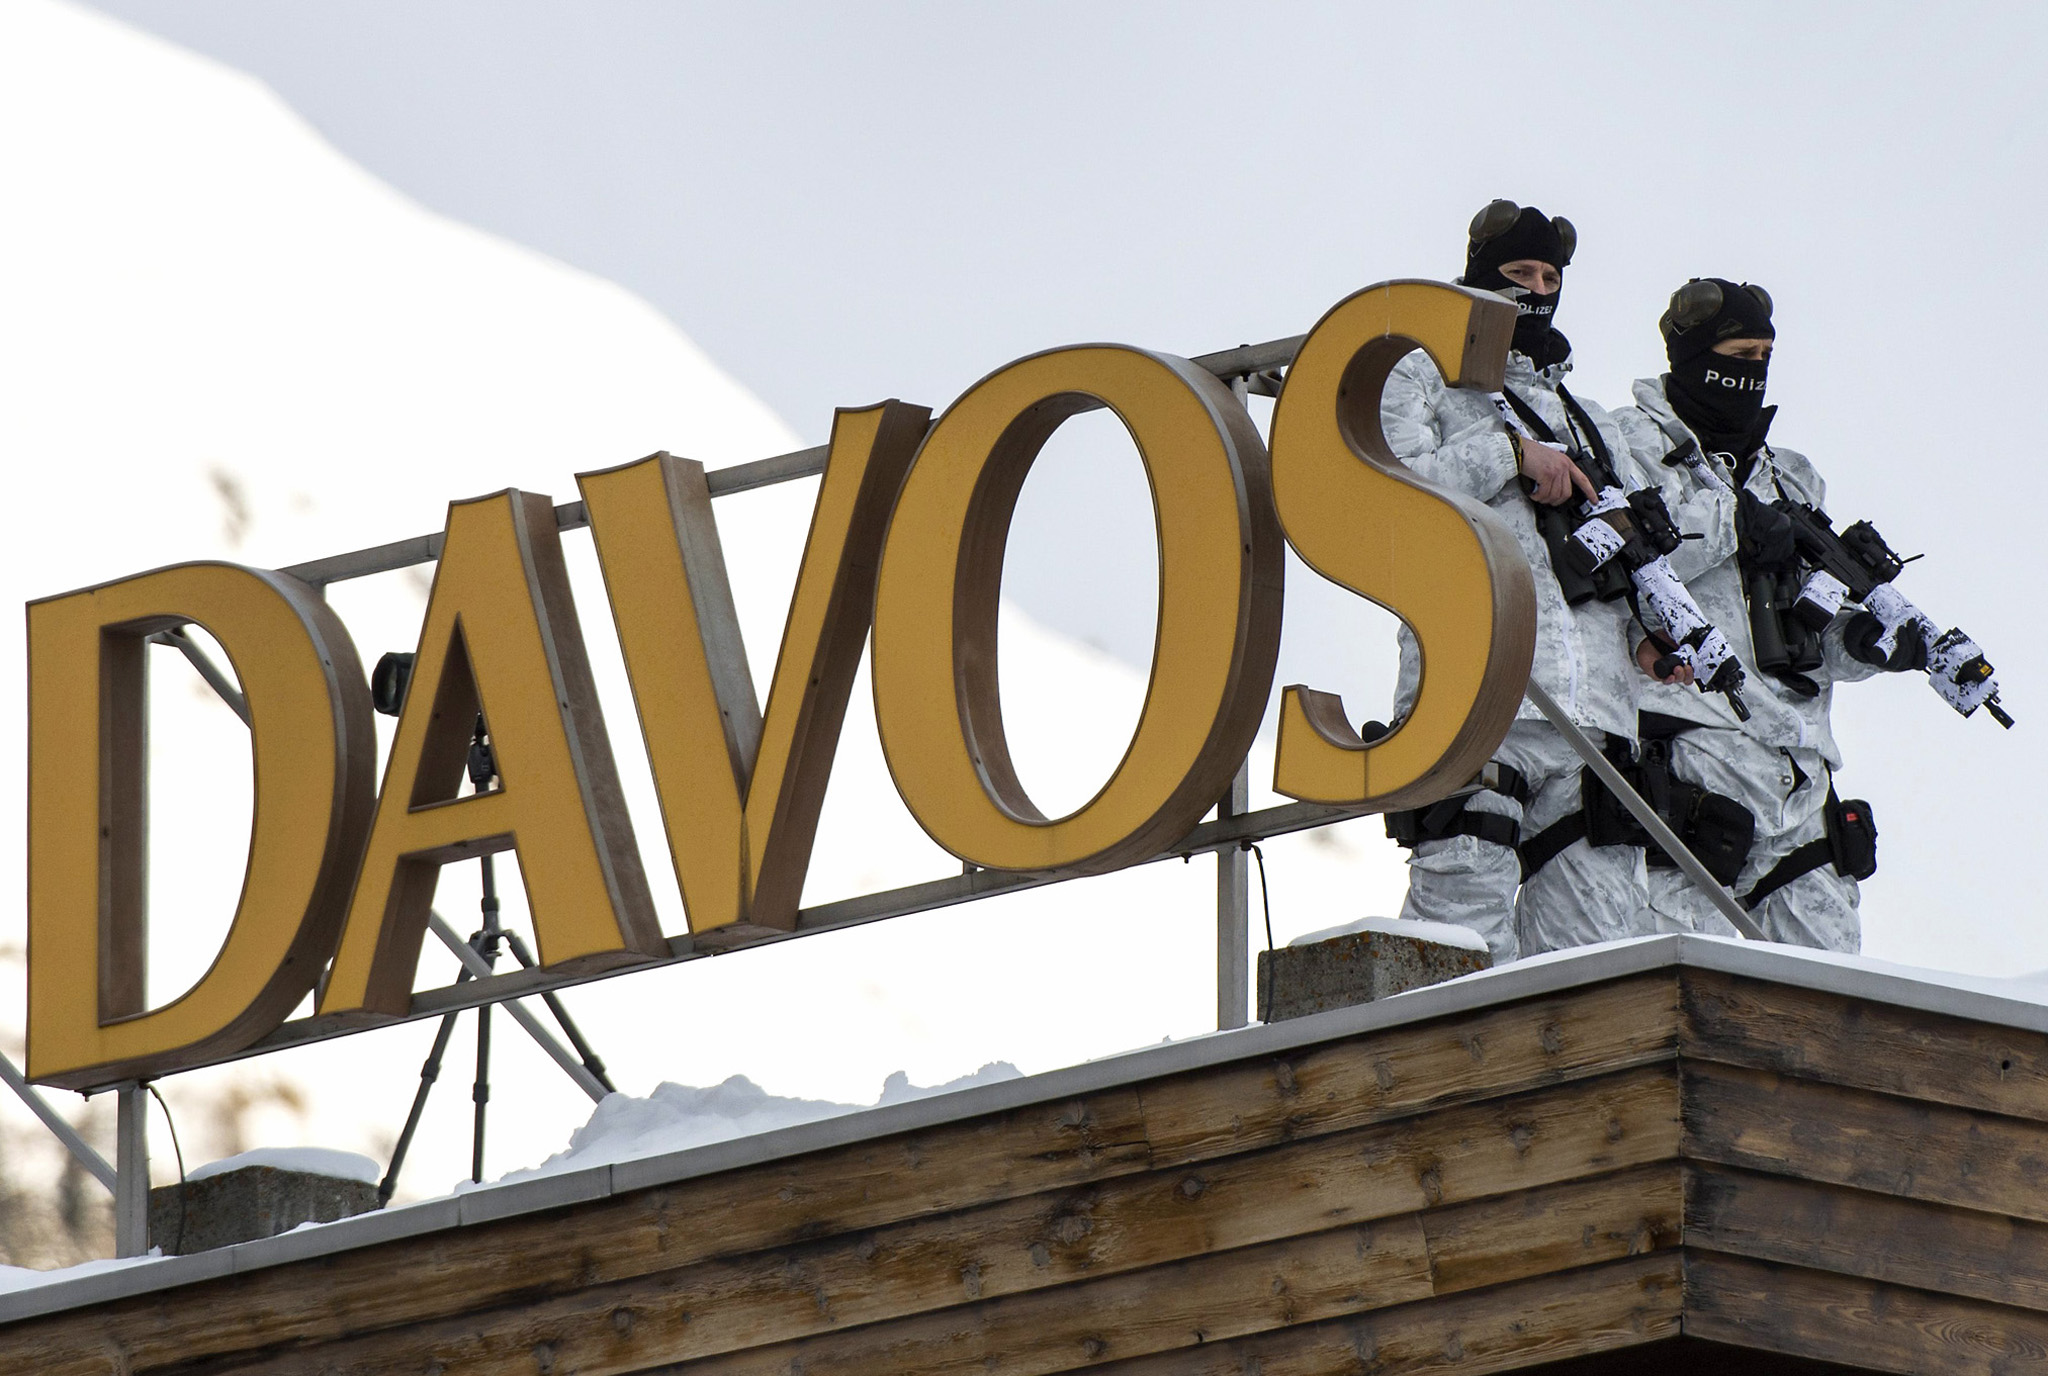 World Economic Forum in Davos...epa04570446 Members of Swiss special police forces stand on the roof of the Kongress Hotel next to the Congress Center, on the eve of the opening of the 45th Annual Meeting of the World Economic Forum, WEF, in Davos, Switzerland, 20 January  2015. The overarching theme of the meeting, which will take place from 21 to 24 January, is 'The New Global Context'.  EPA/JEAN-CHRISTOPHE BOTT